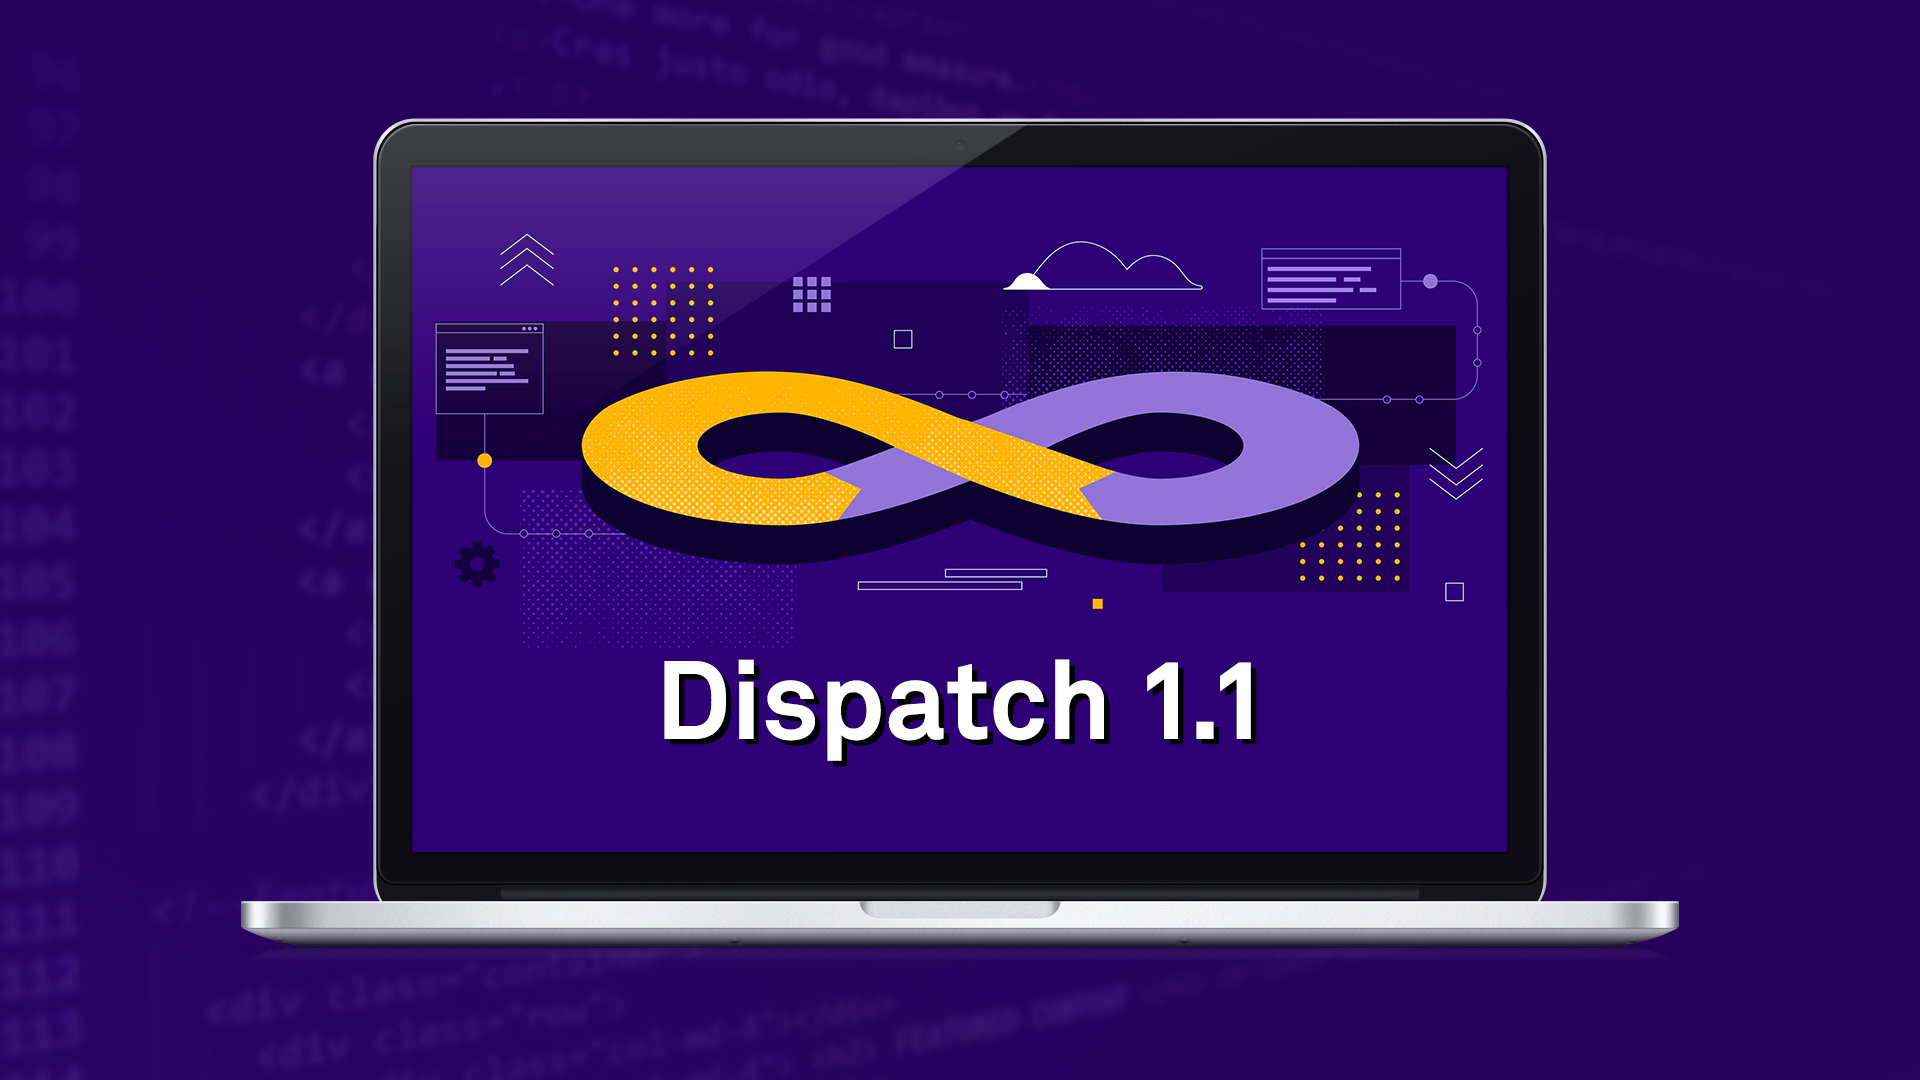 Announcing Dispatch 1.1 - Cloud Native CI/CD for Enterprise-Grade GitOps